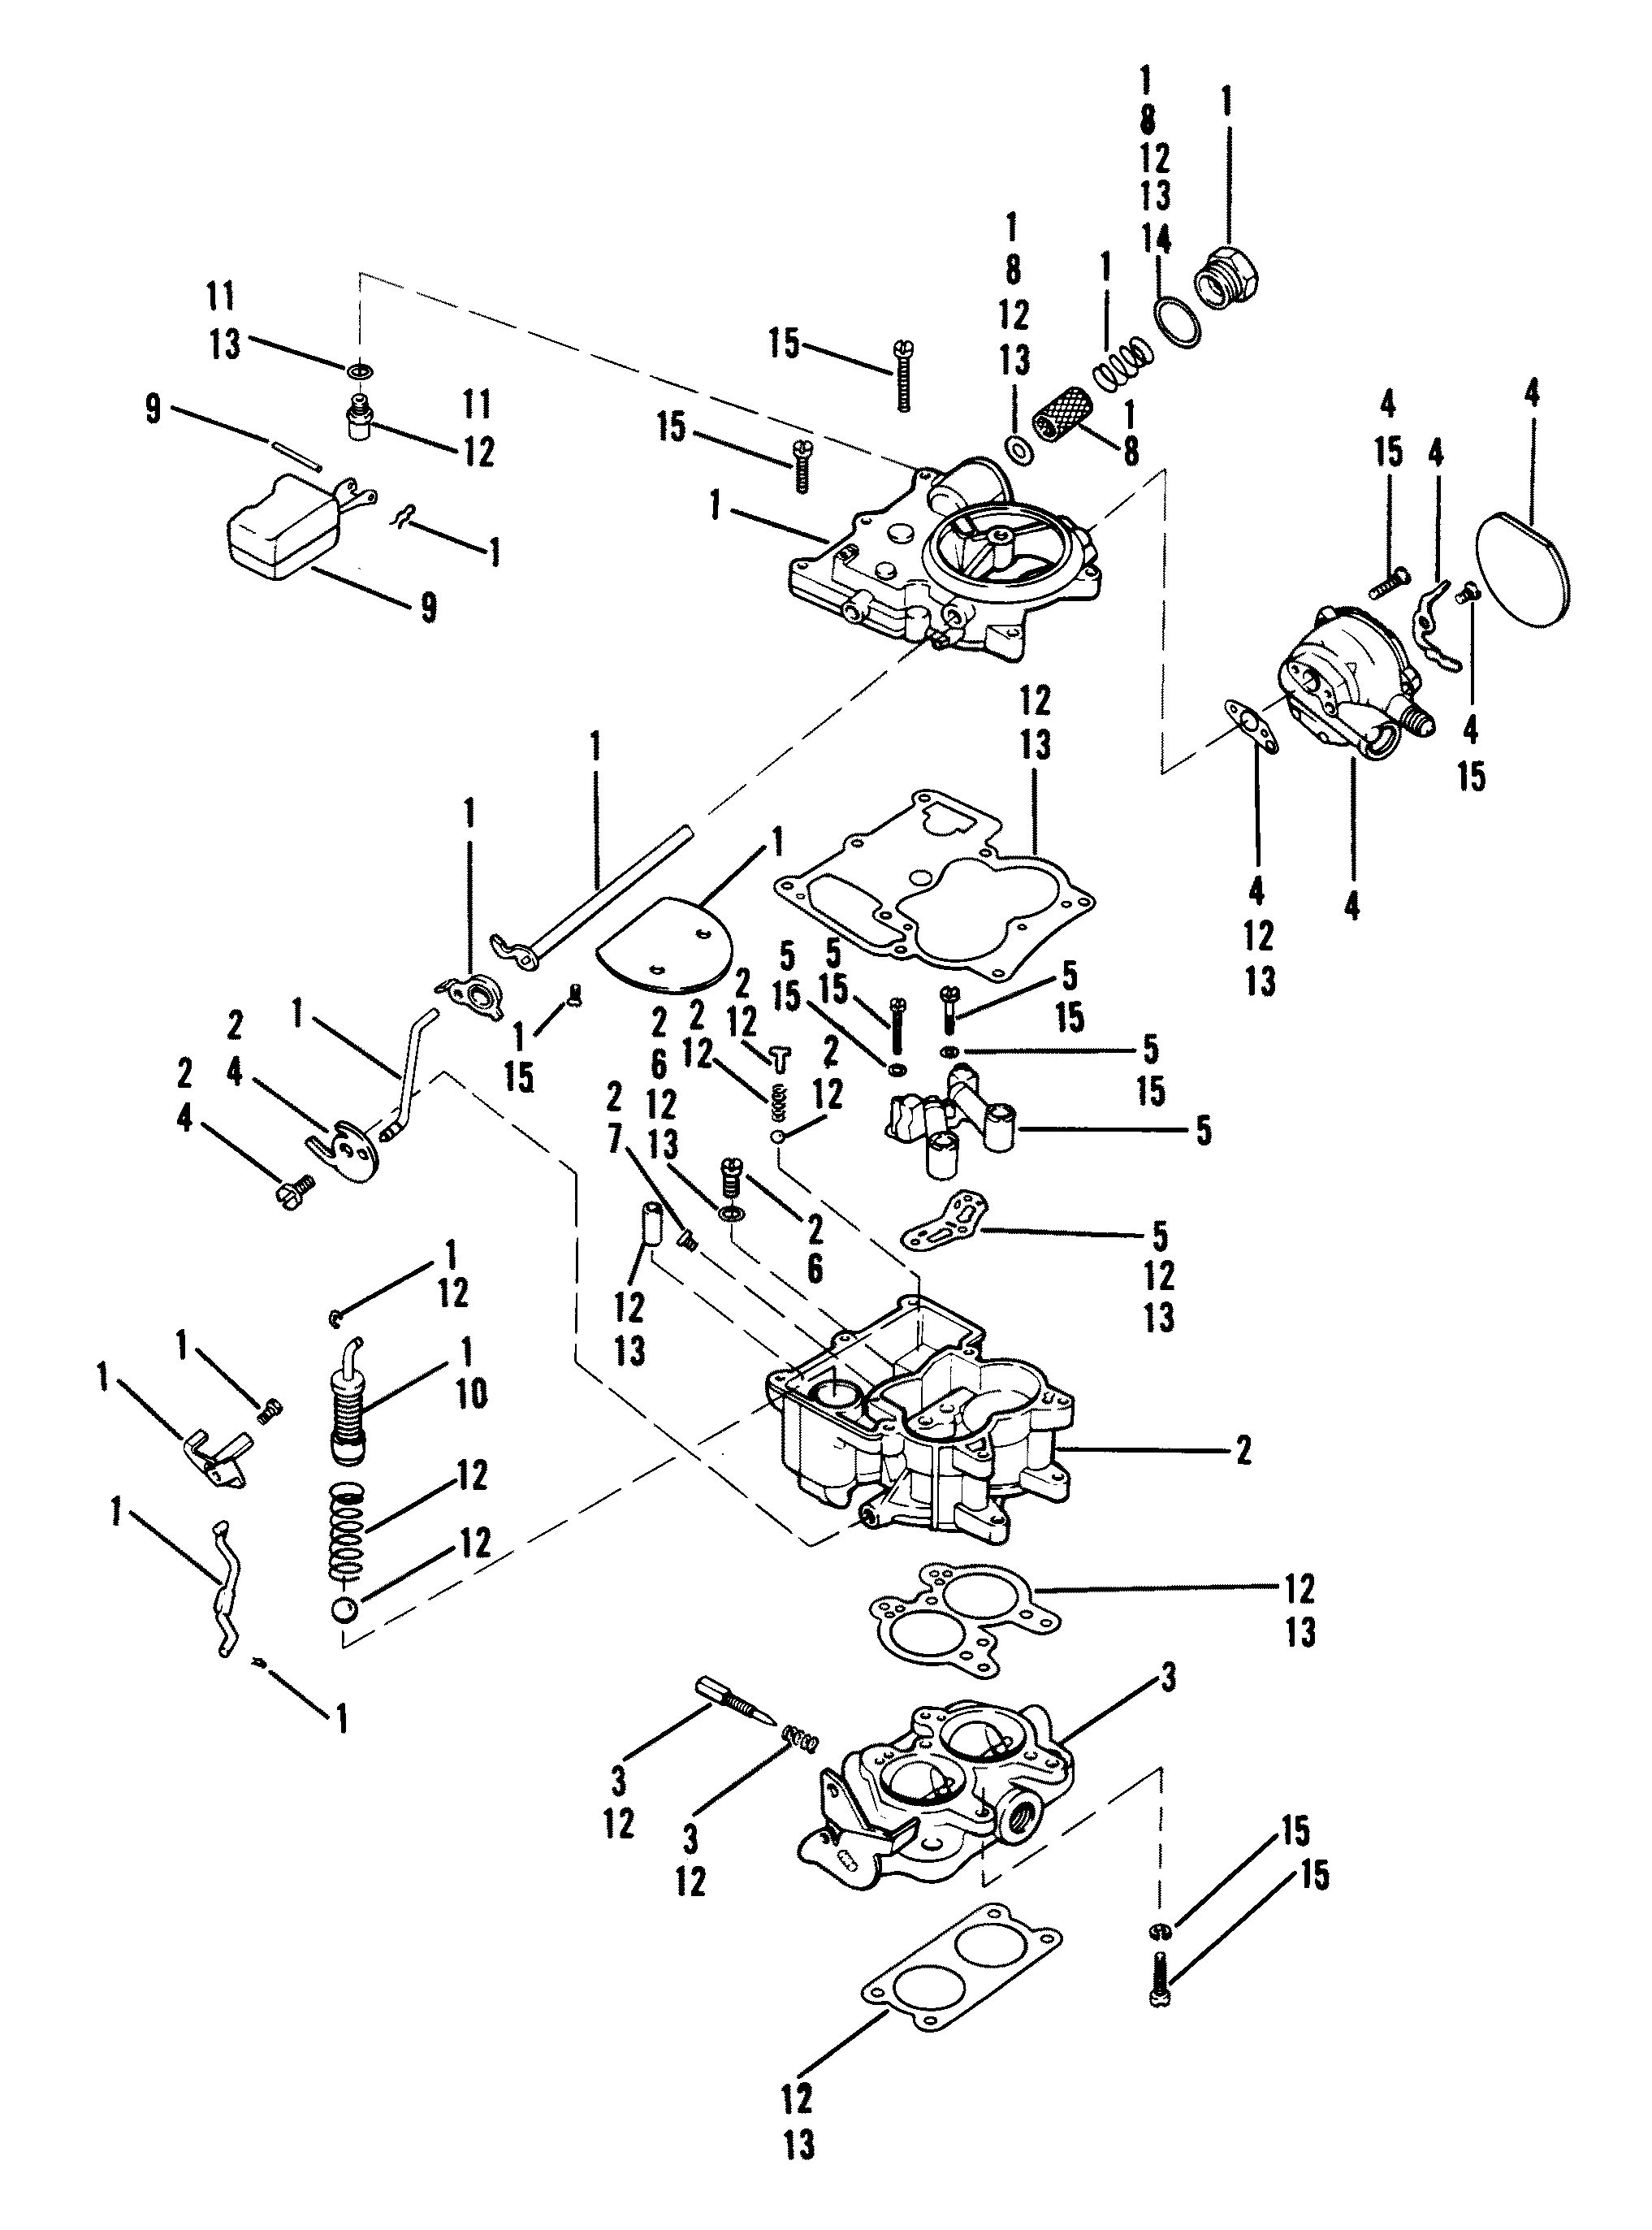 Mccormick Xtx 185 Wire Diagram Wiring Libraries Tractor Librarycarburetor Rochester For Mercruiser 120 H P 2 5l140